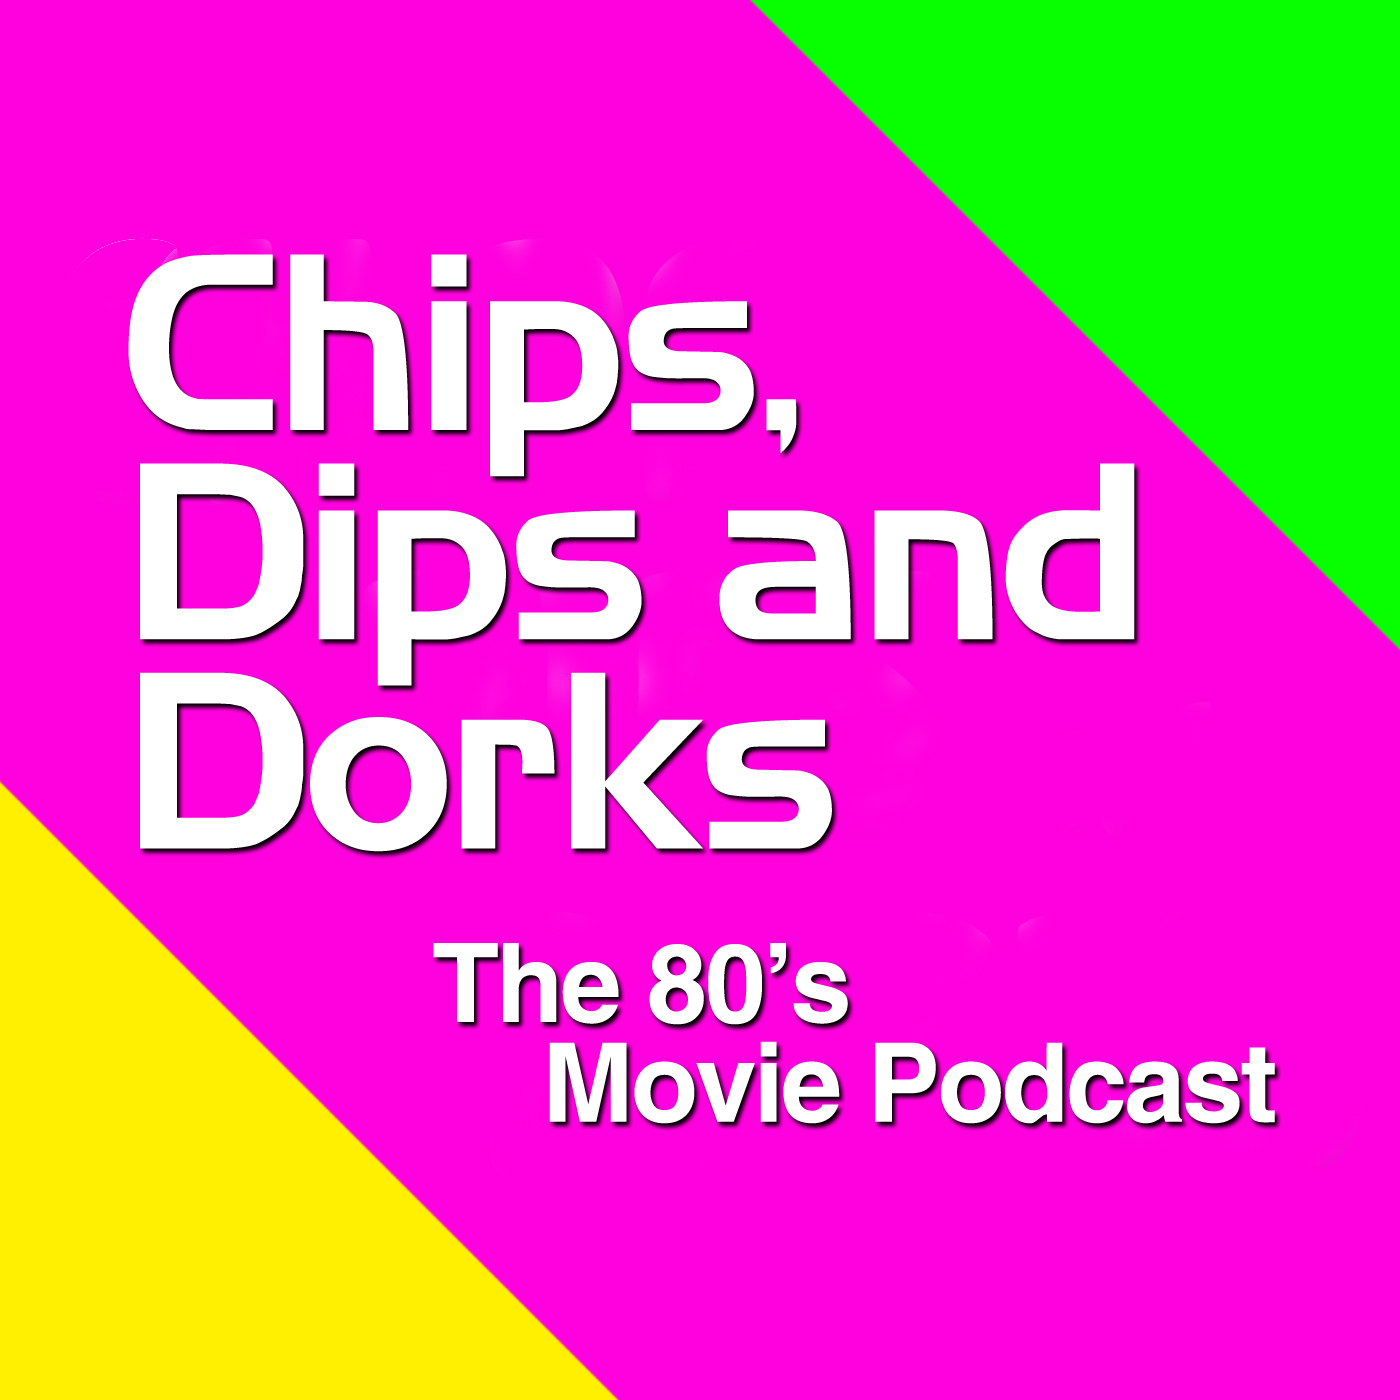 Chips, Dips and Dorks - The 80's Movie Podcast logo